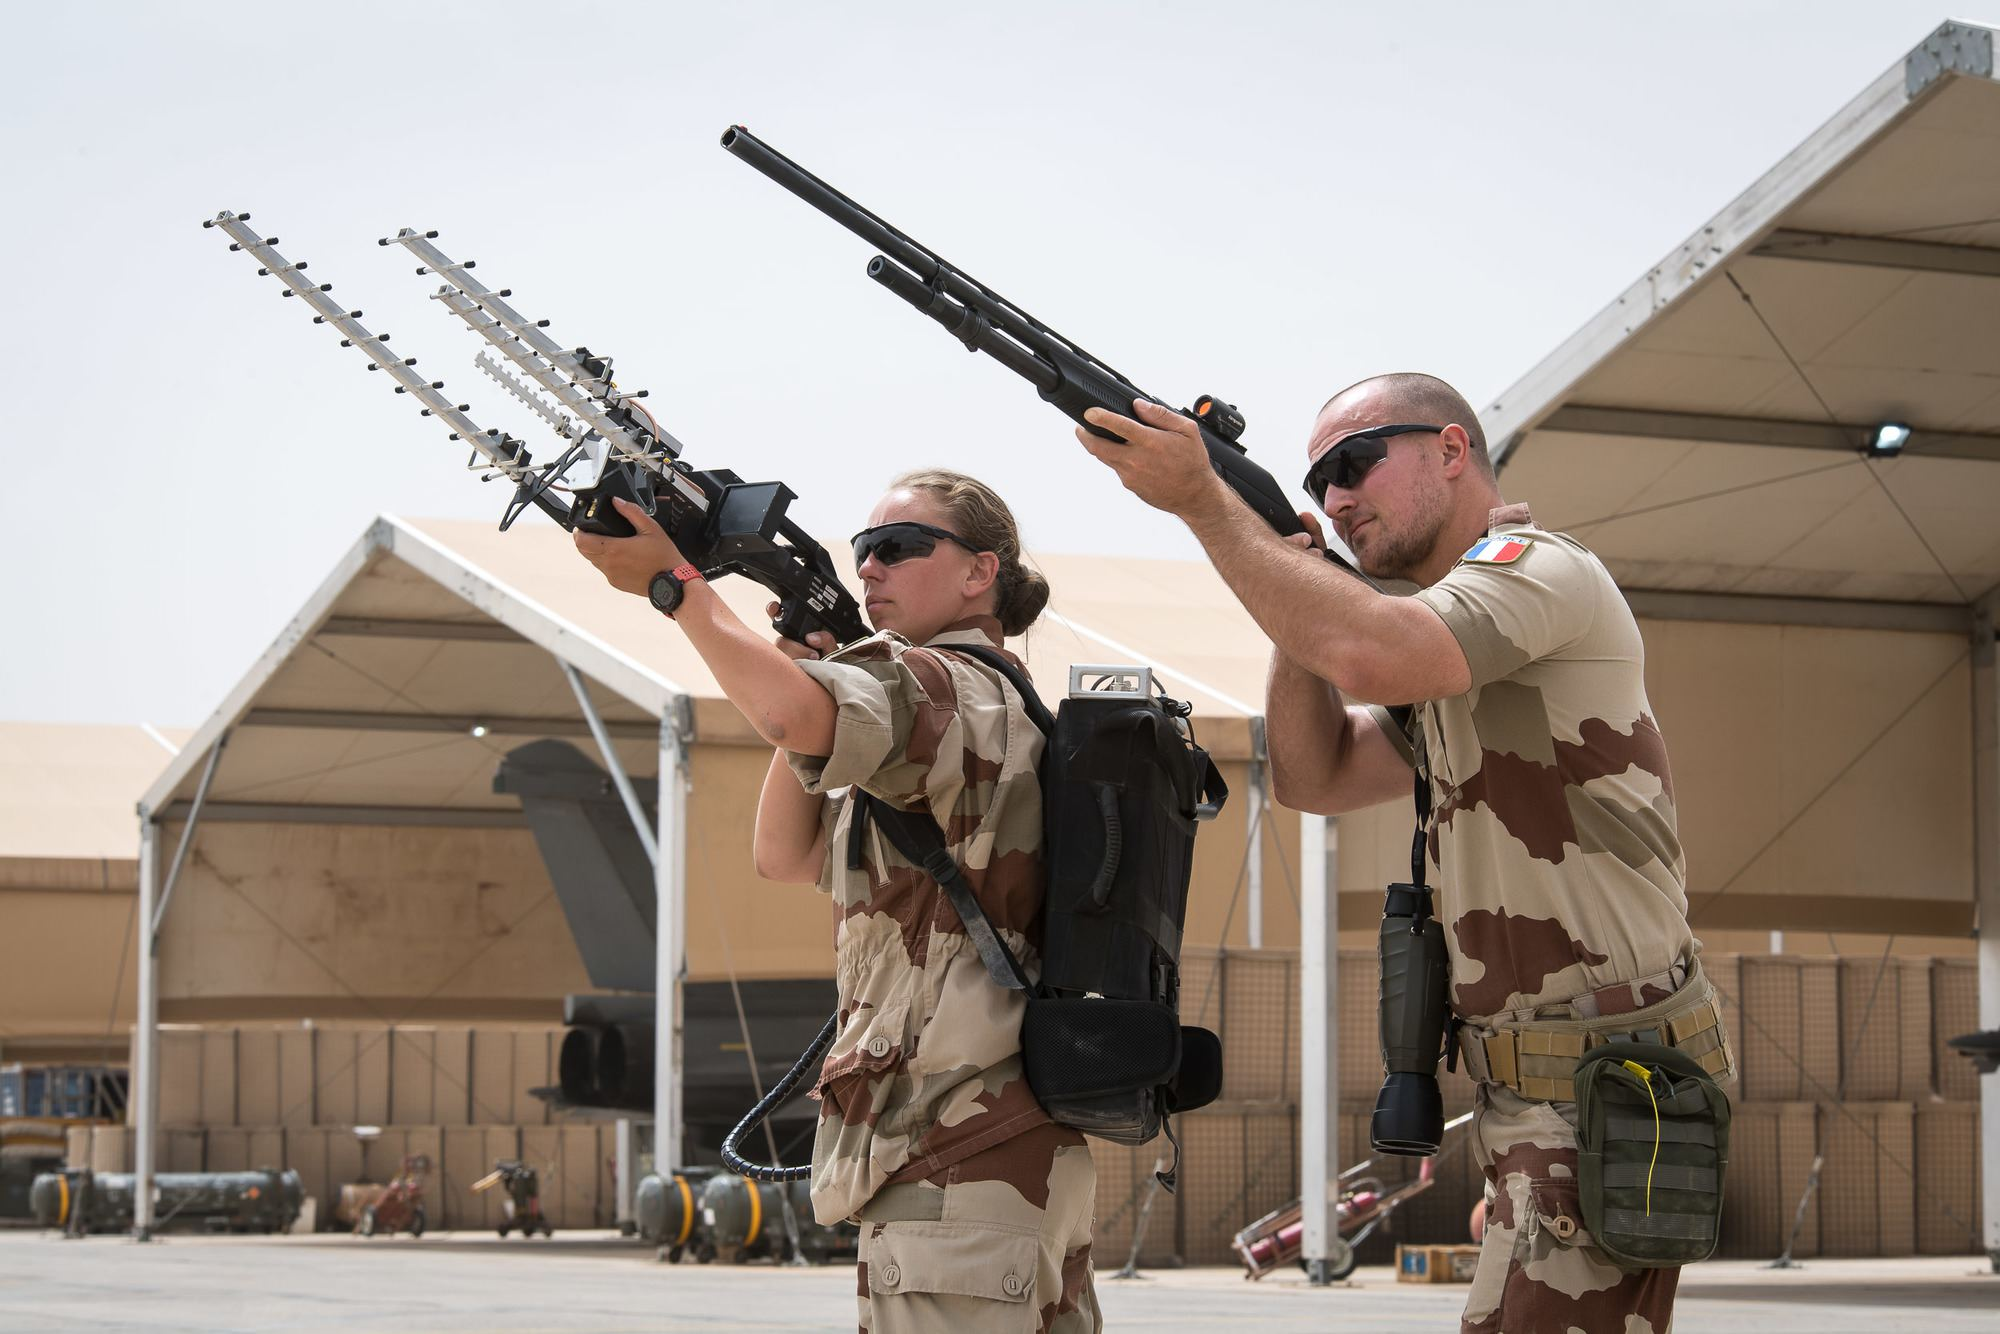 French Air Force Fusiliers showcasing anti-drone equipment on the Al Dhafra Air Base